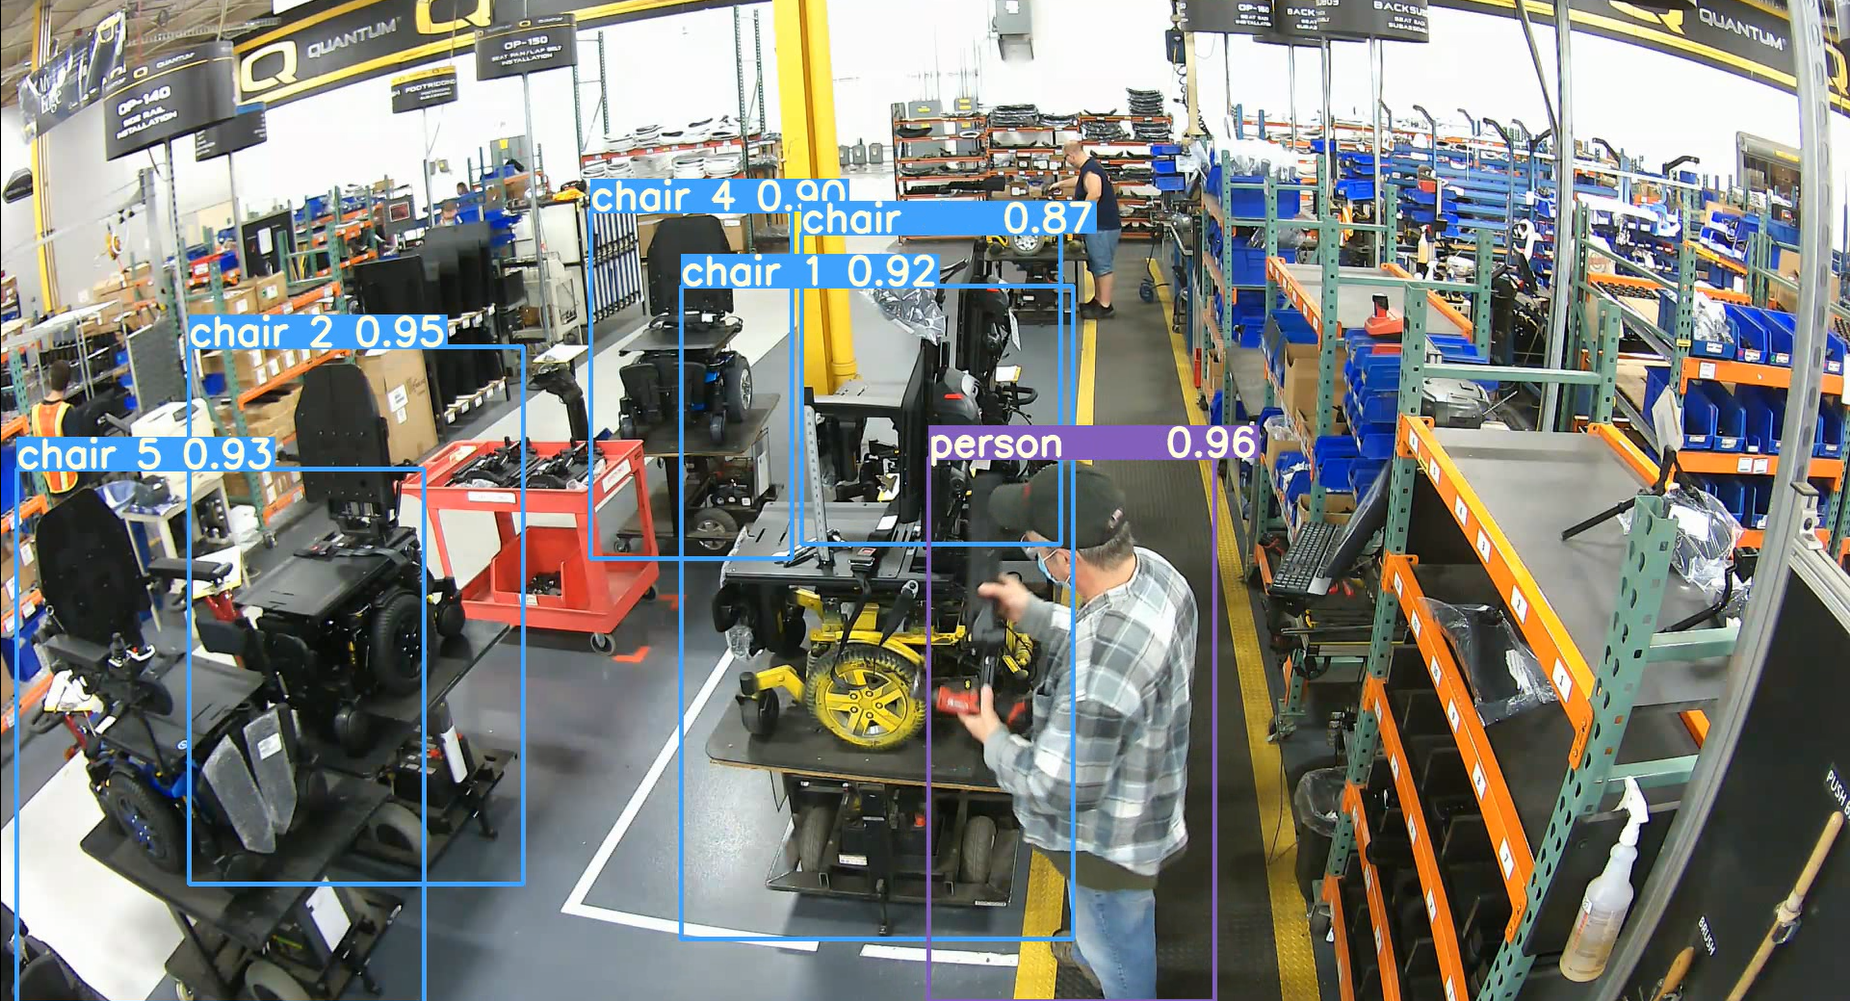 This screenshot of a live computer vision simulation shows how image processing recognizes certain objects and their locations within their environment.